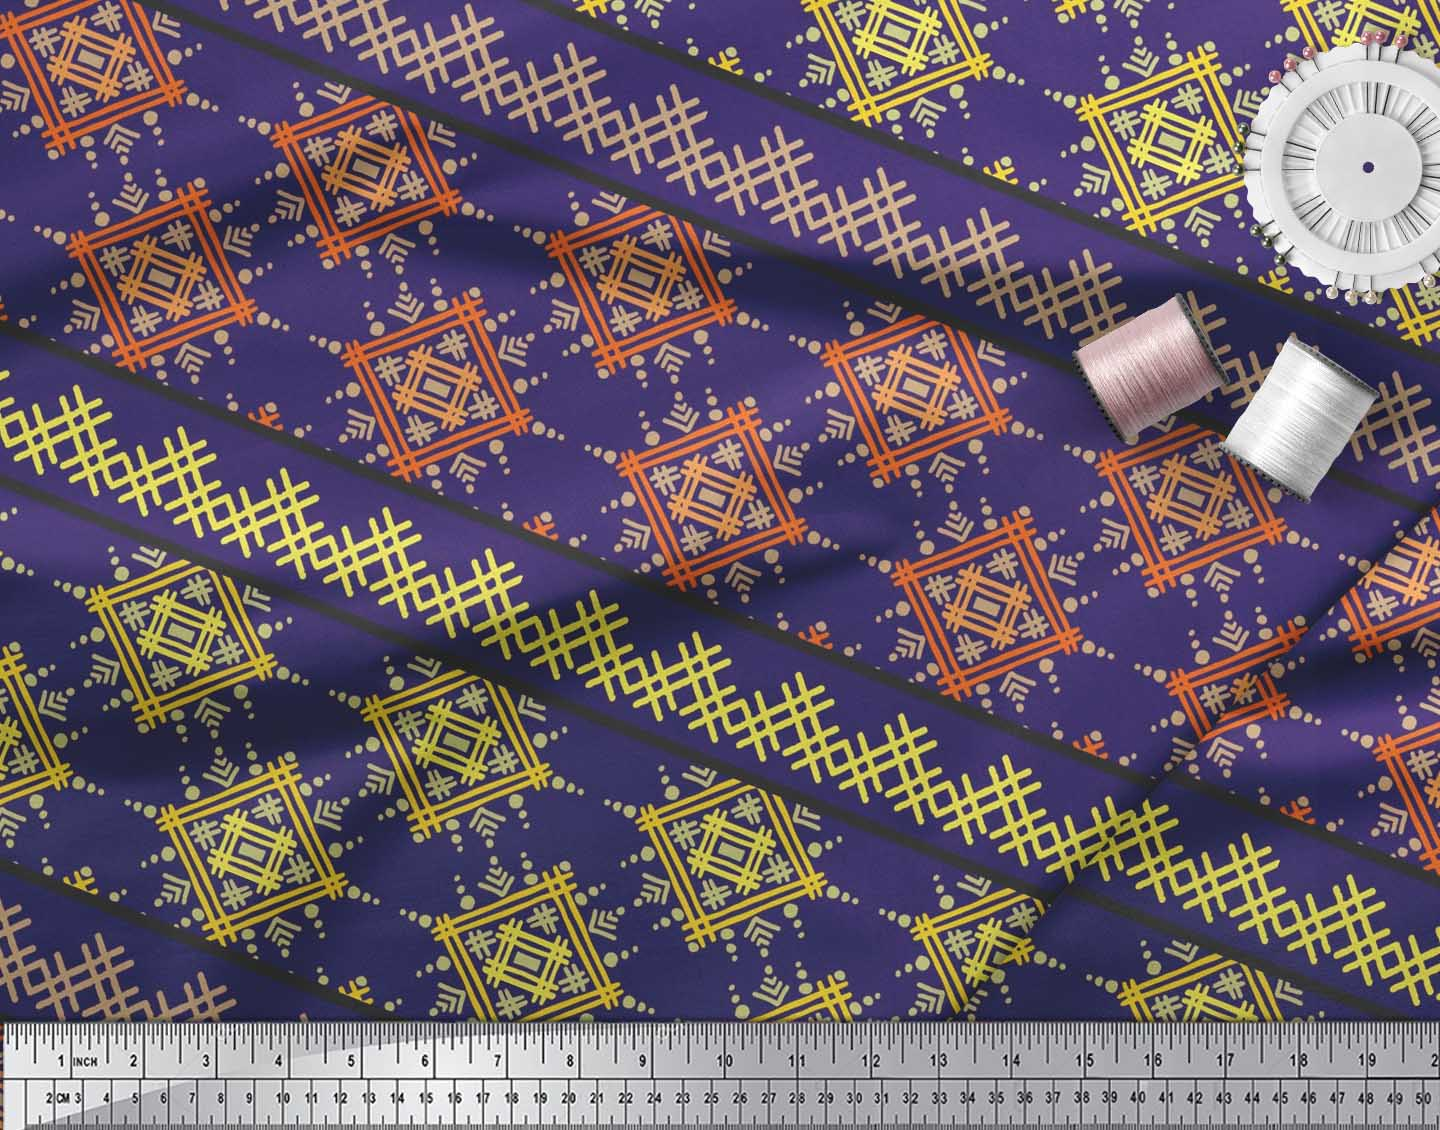 Soimoi-Cotton-Poplin-Fabric-Artistic-Geometric-Print-Fabric-by-the-ZU5 thumbnail 3